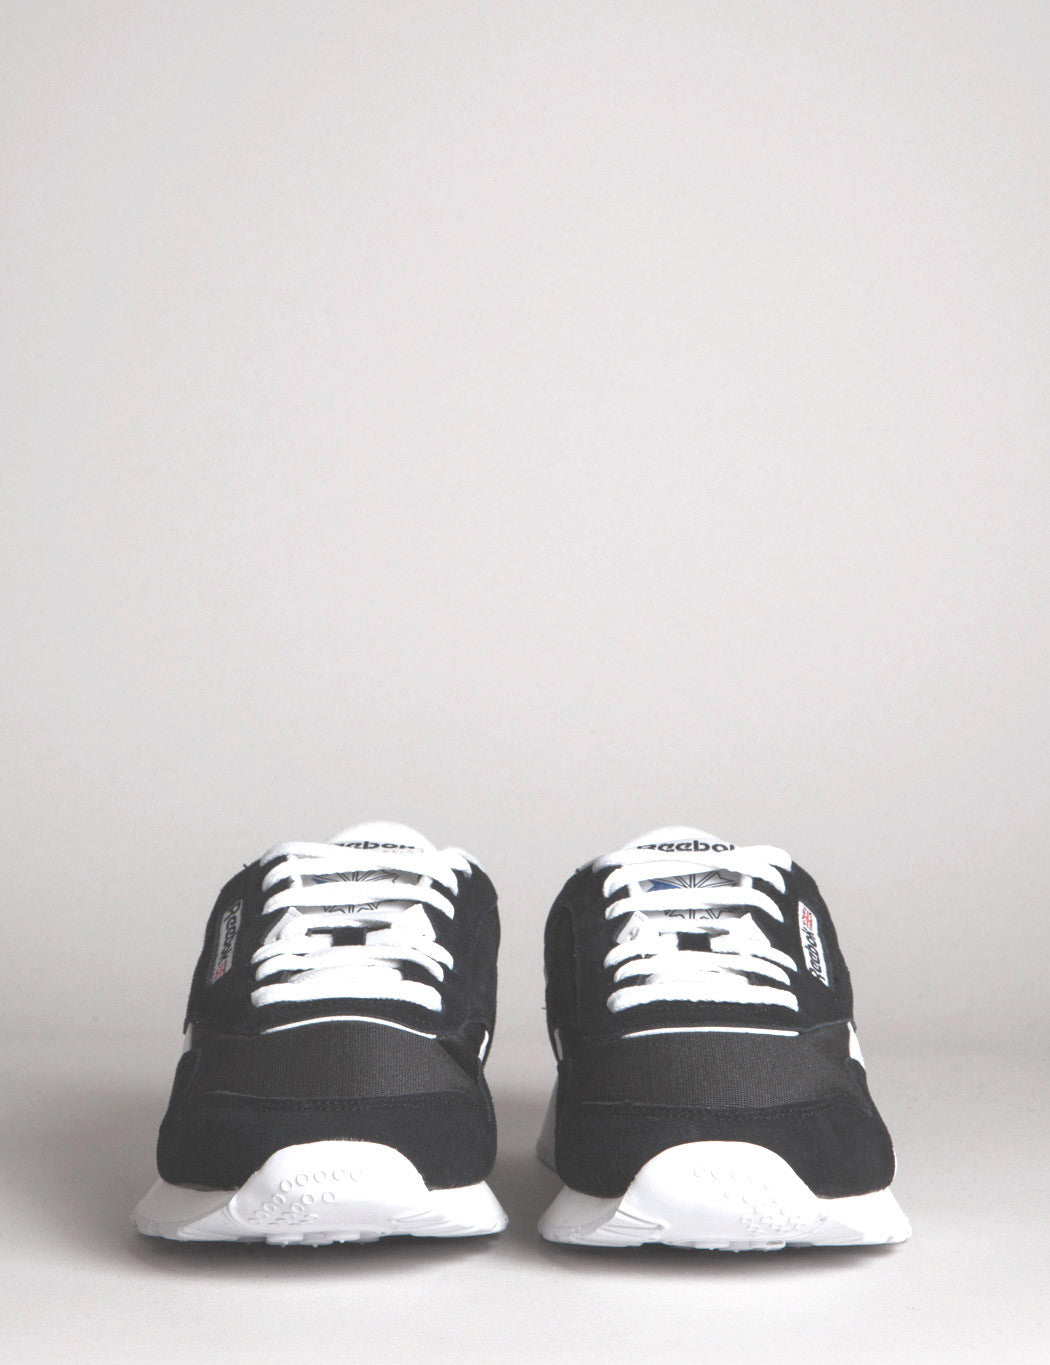 Reebok CL Classic Trainers - Black/White